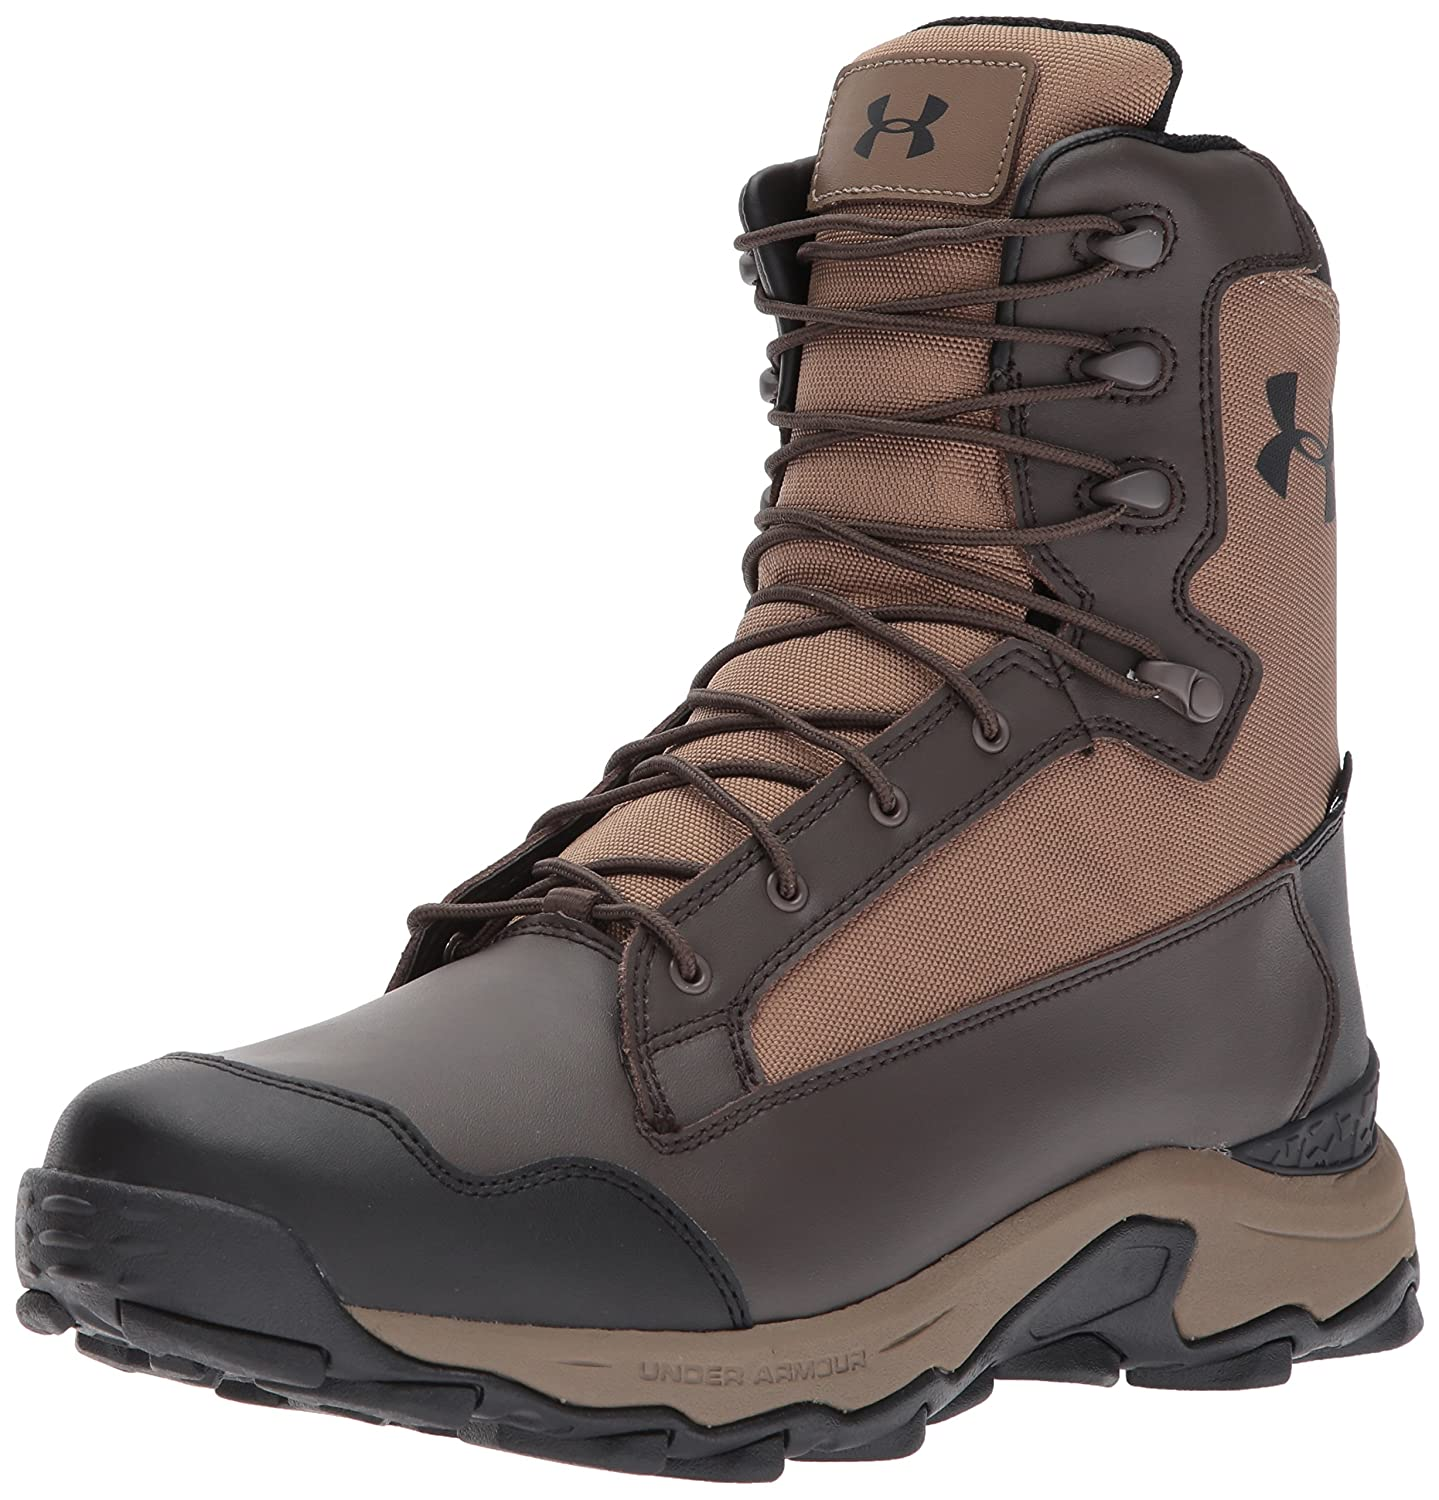 Under Armour Men's Tanger Waterproof 400G Hunting Shoe